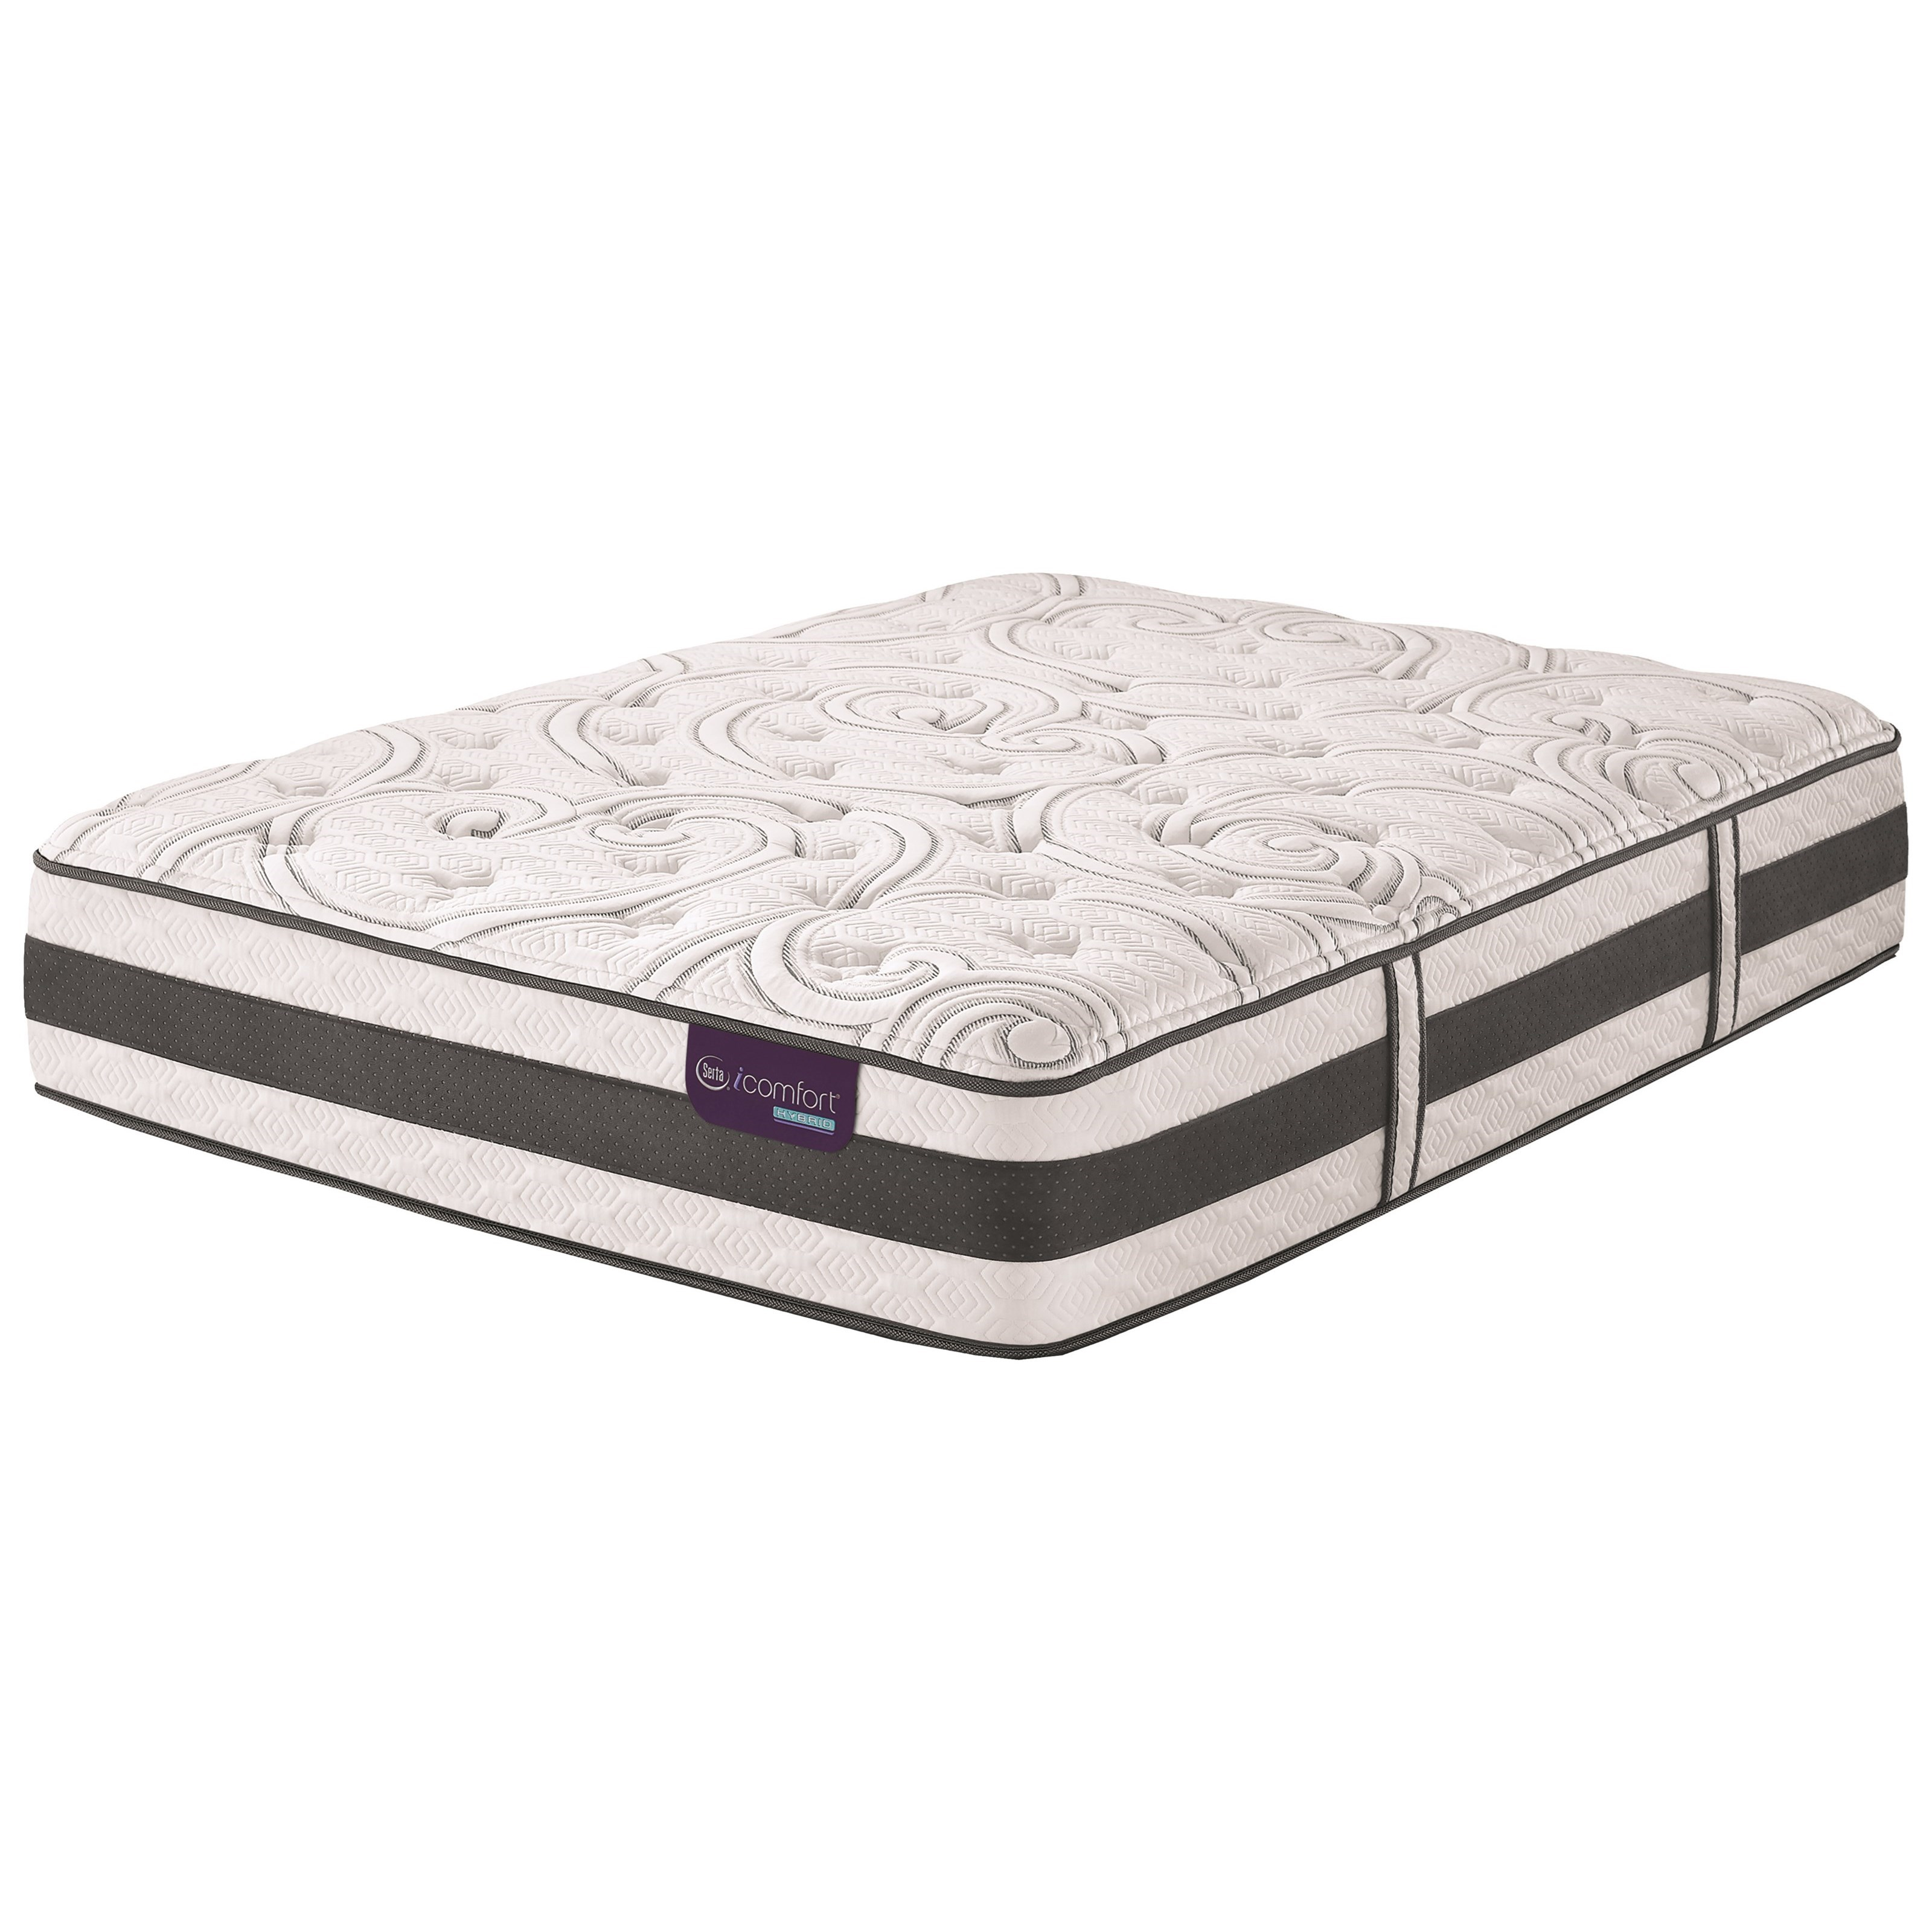 review bed icomfort prodigy watch expert youtube mattress iii serta